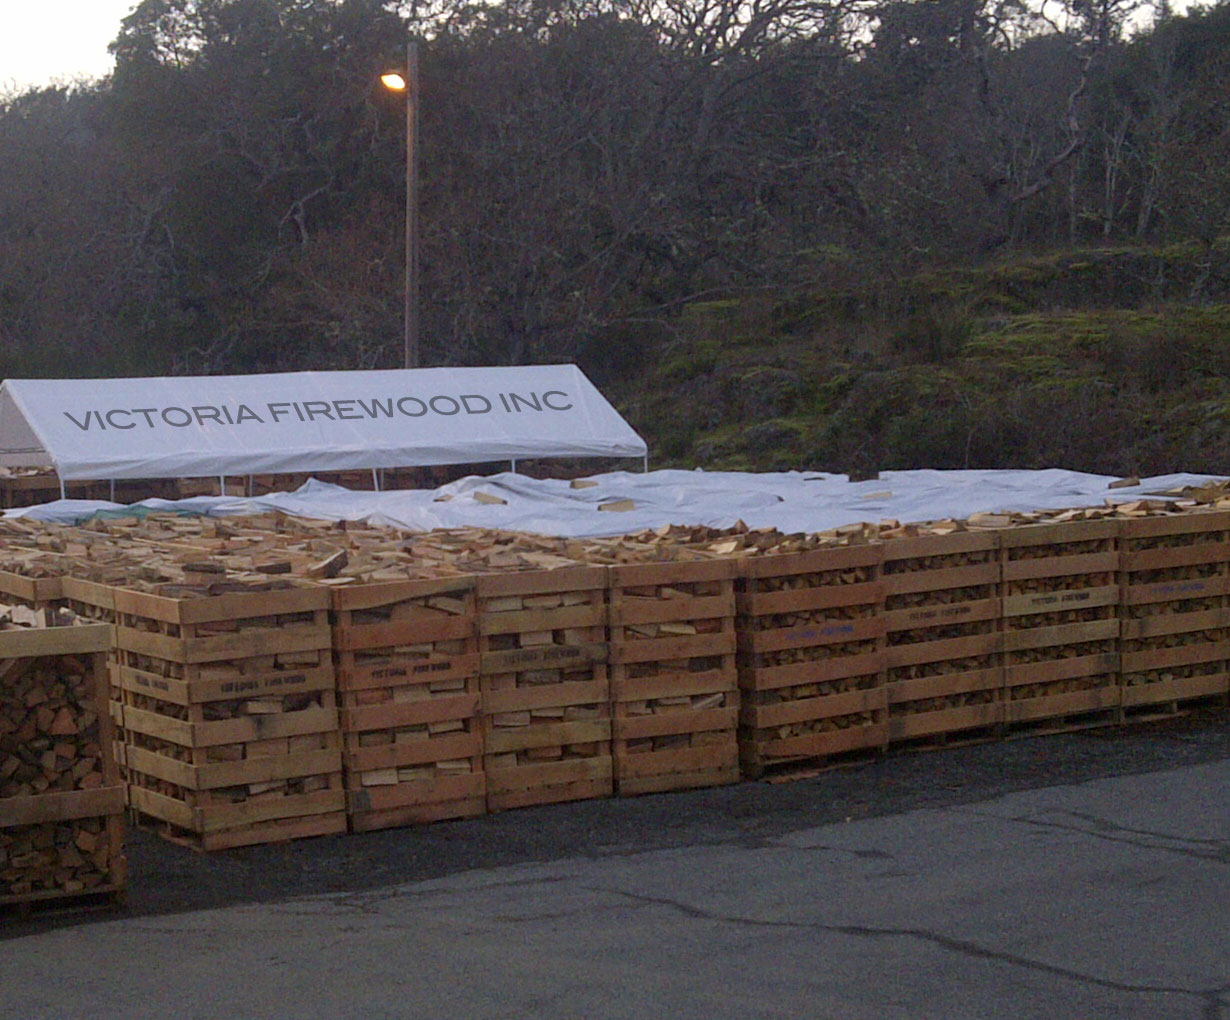 Victoria Firewood Inc Firewood For Sale In Victoria Bc